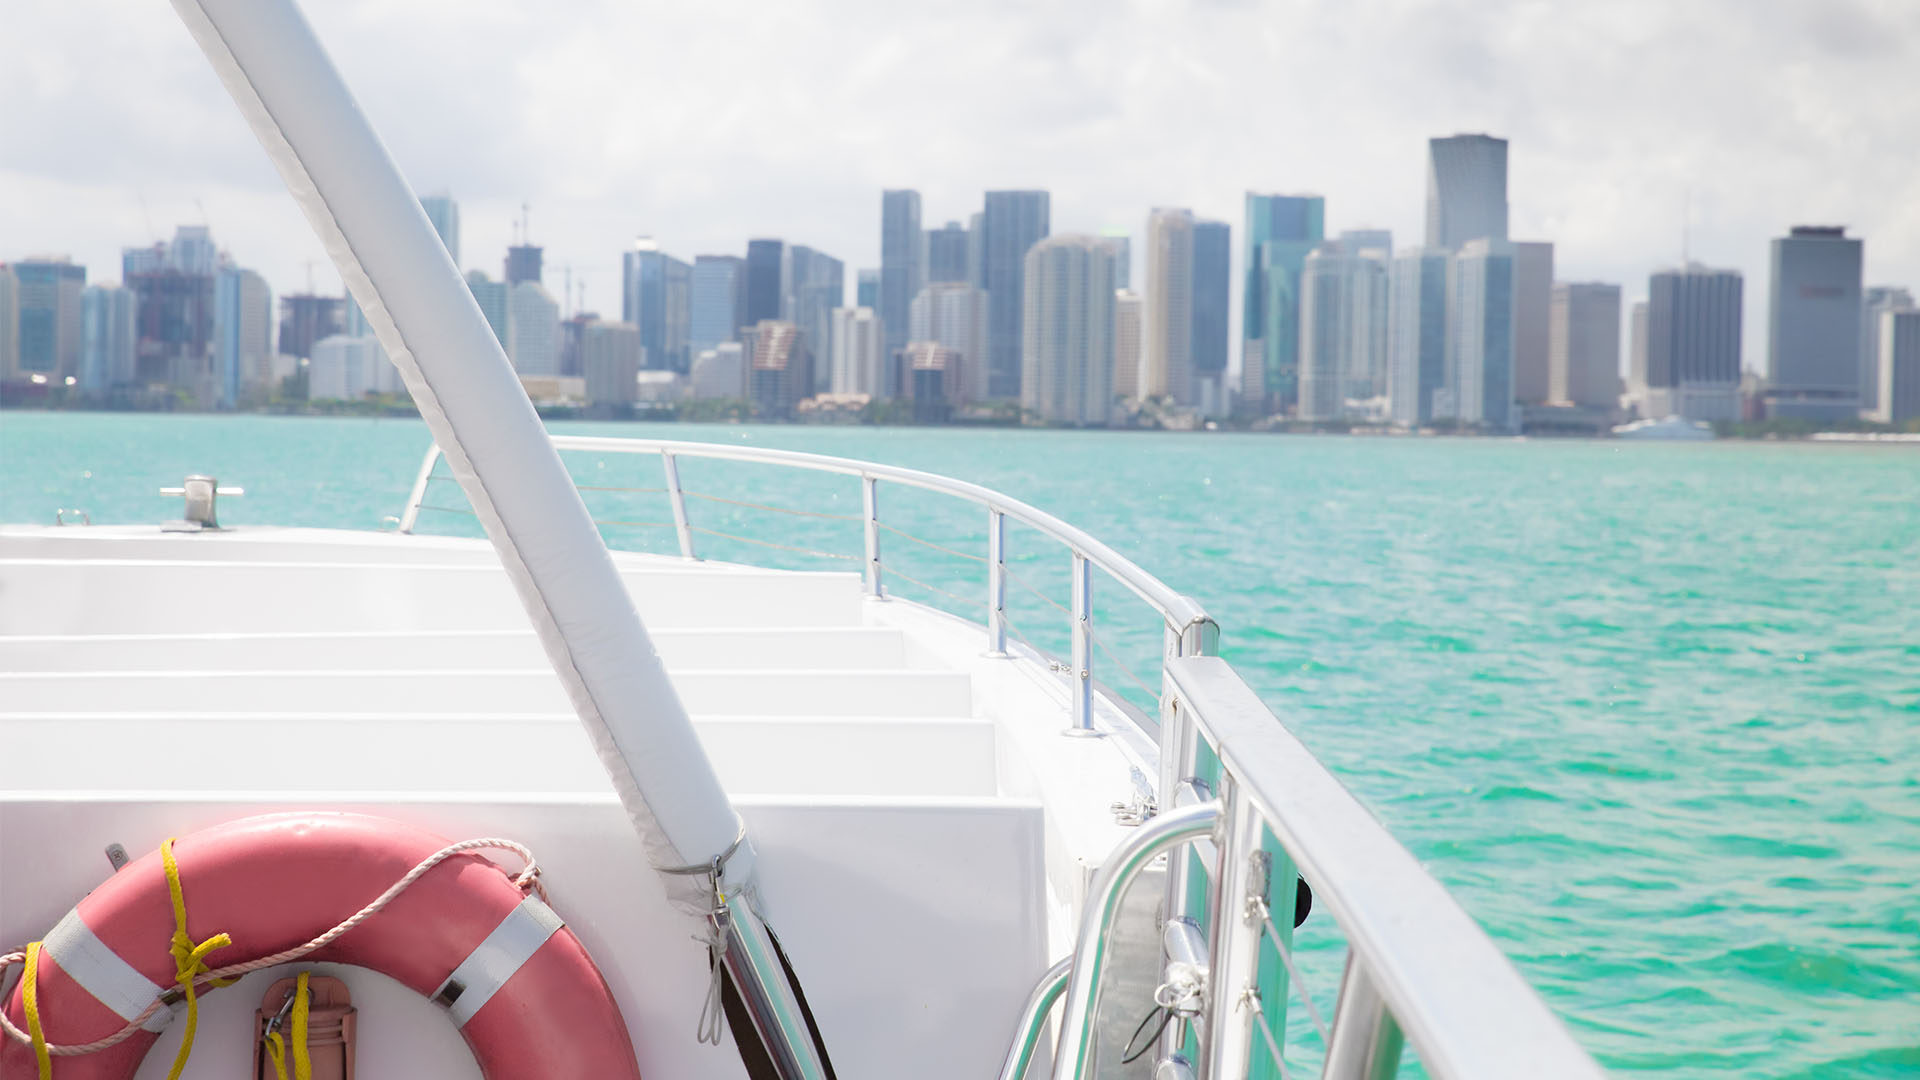 view of cityscape from small boat with life preserver